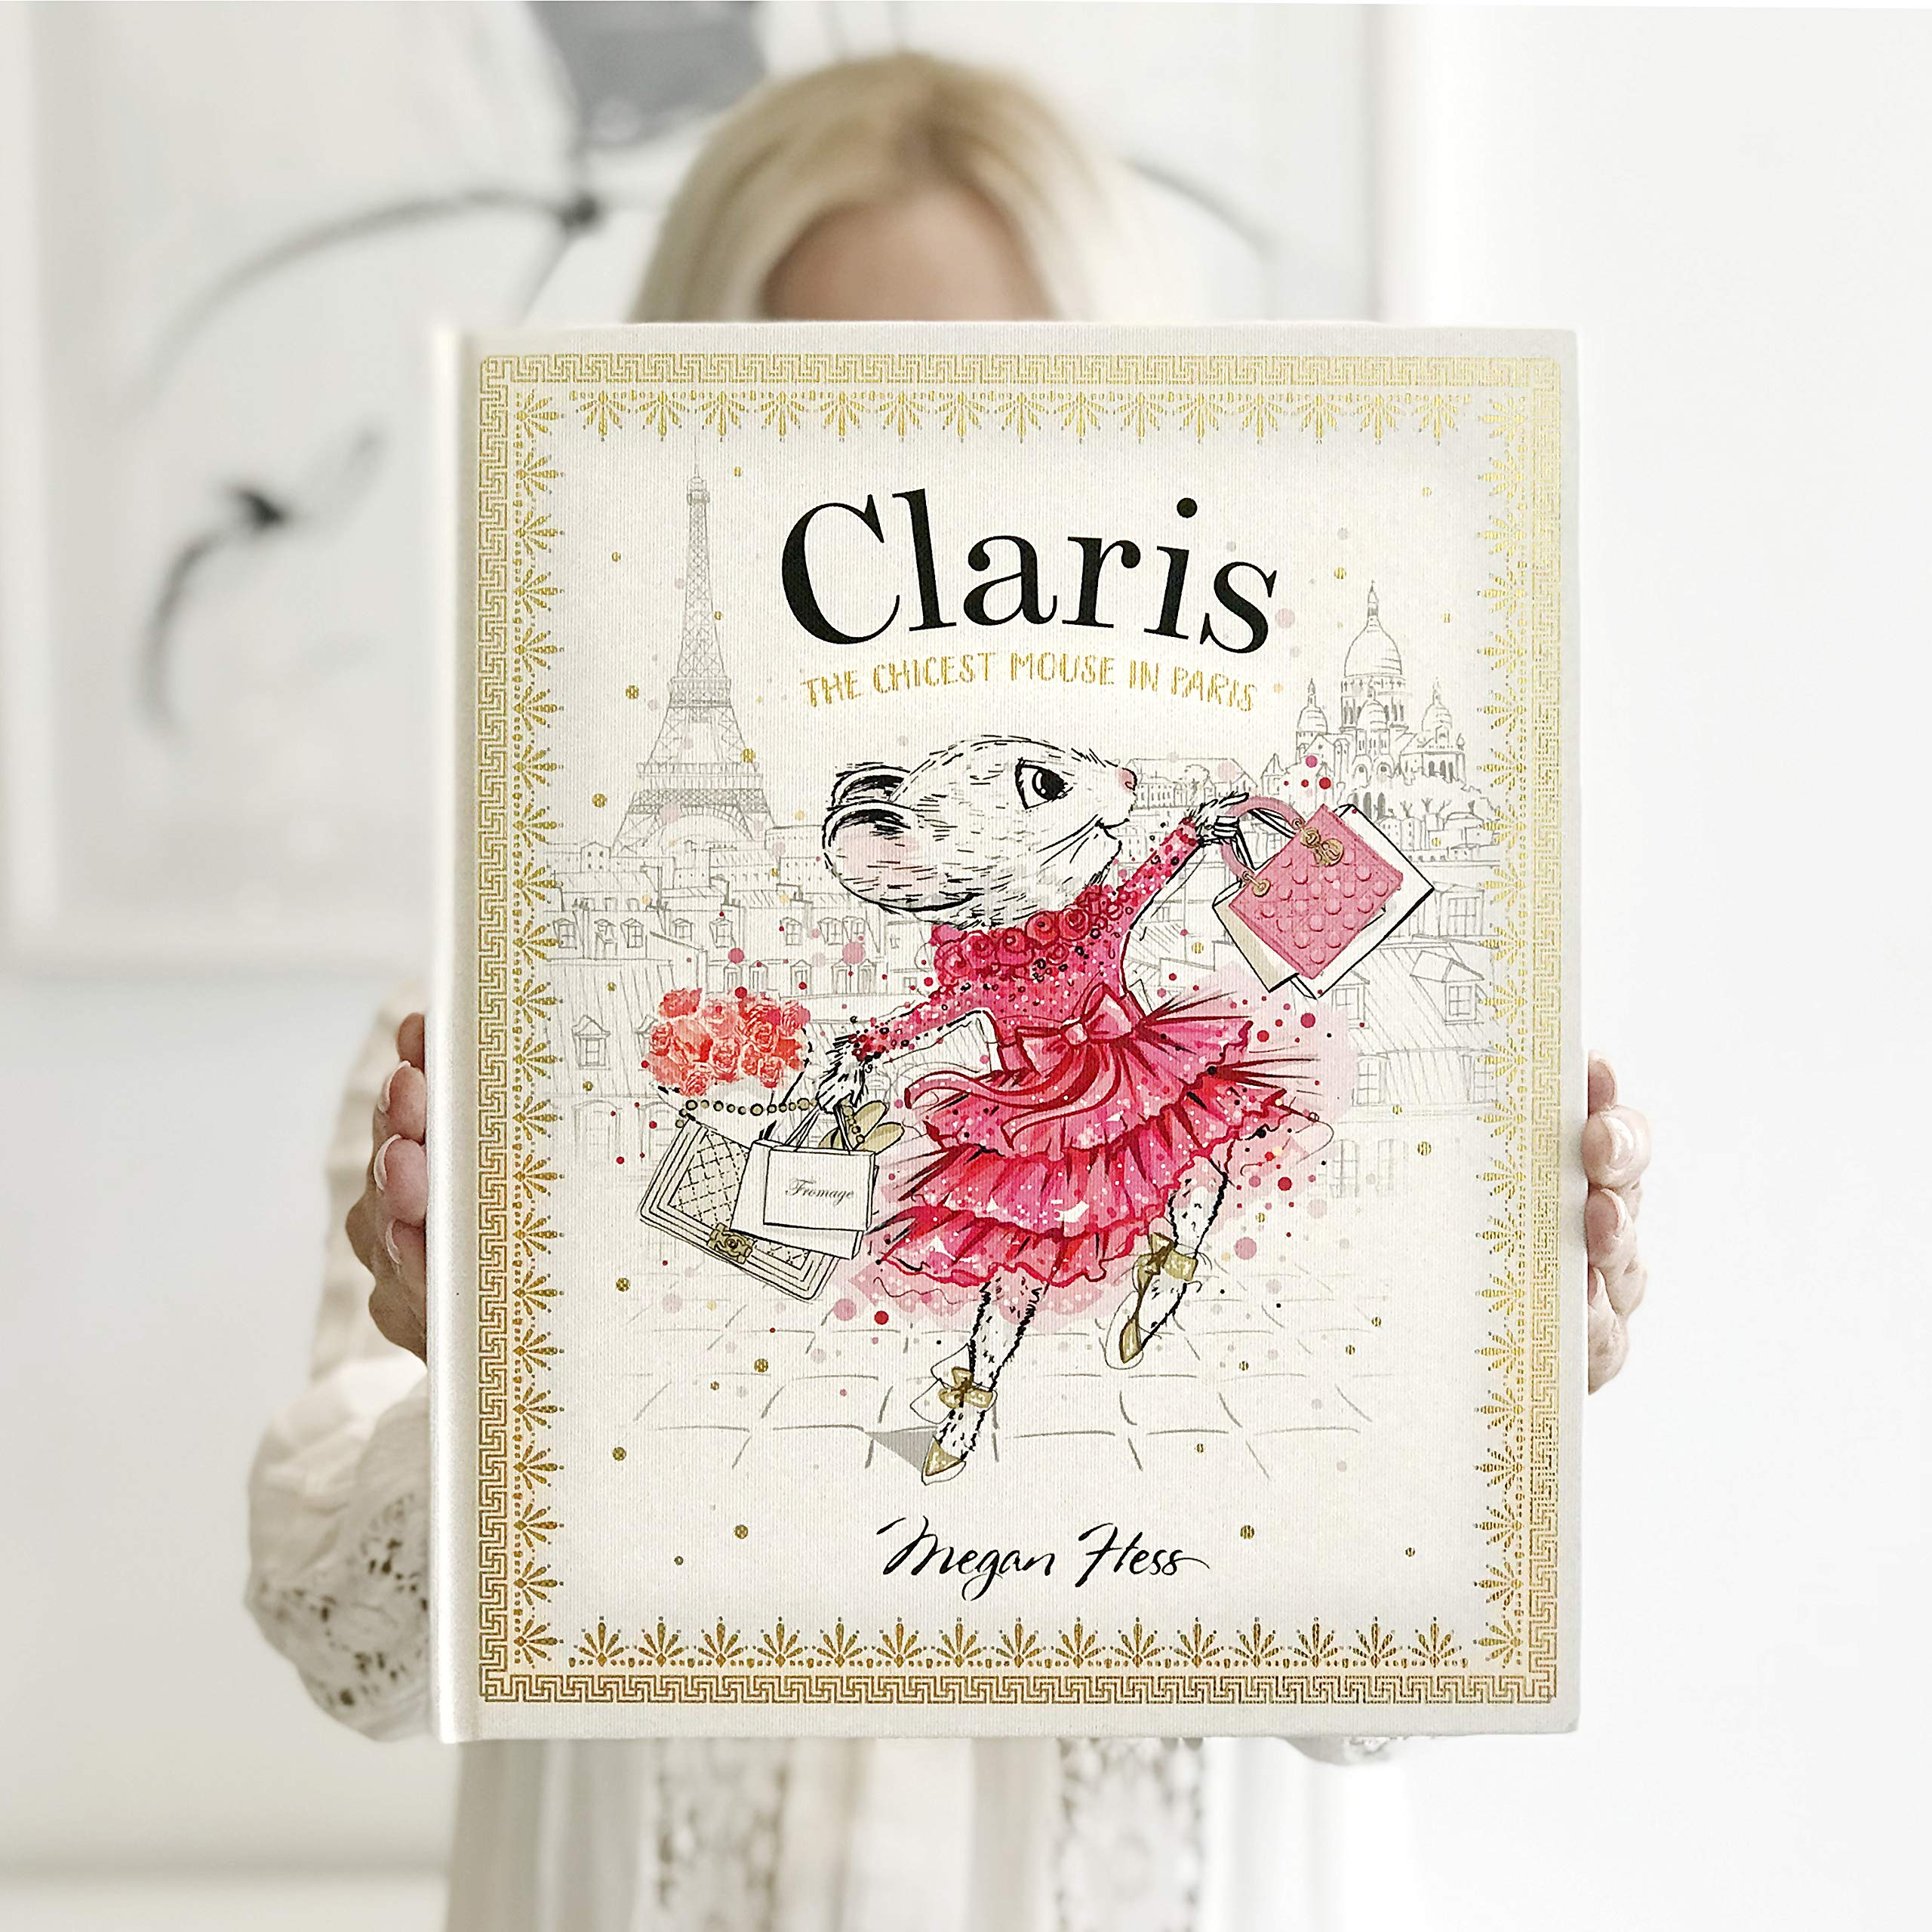 Claris: The Chicest Mouse in Paris - Valentine's Day Books for Kids